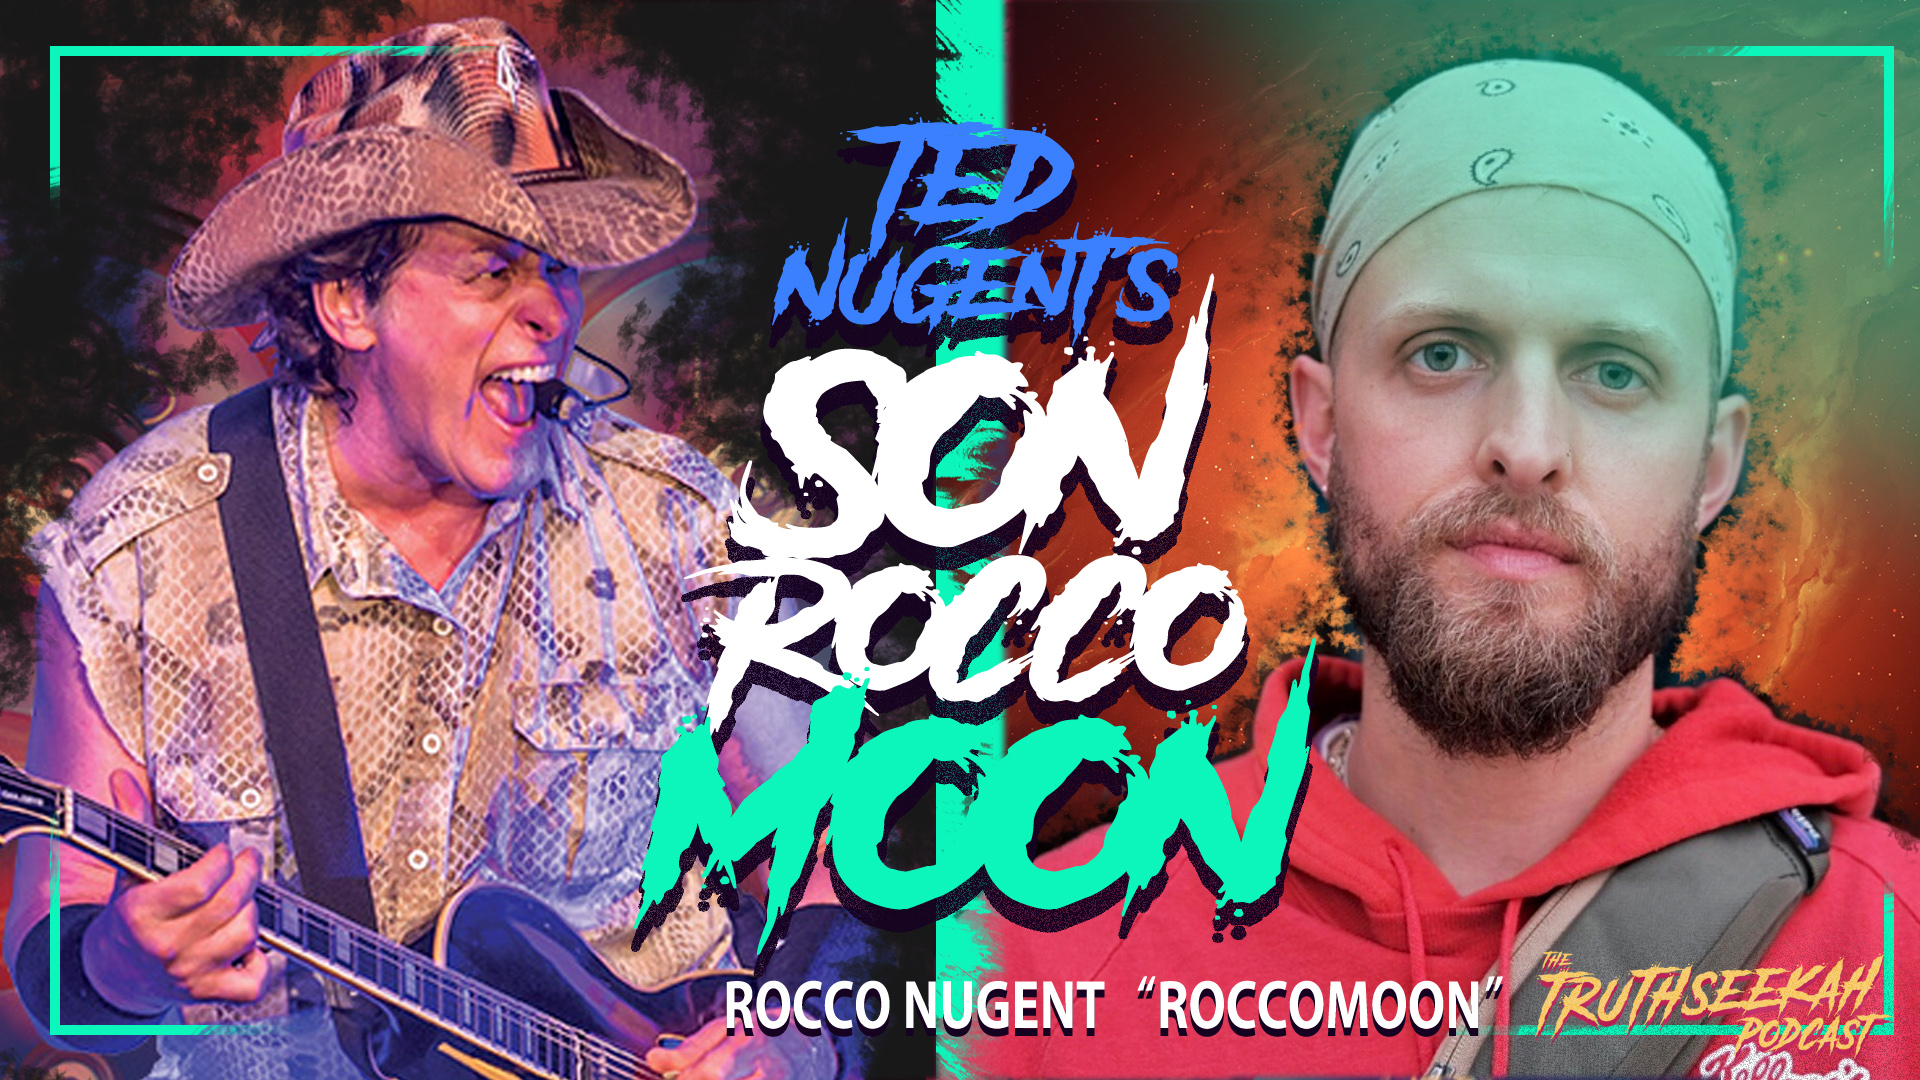 Ted Nugent's Son Is A Spiritual Power House – Rocco Nugent (Roccomoon) TruthSeekah Podcast